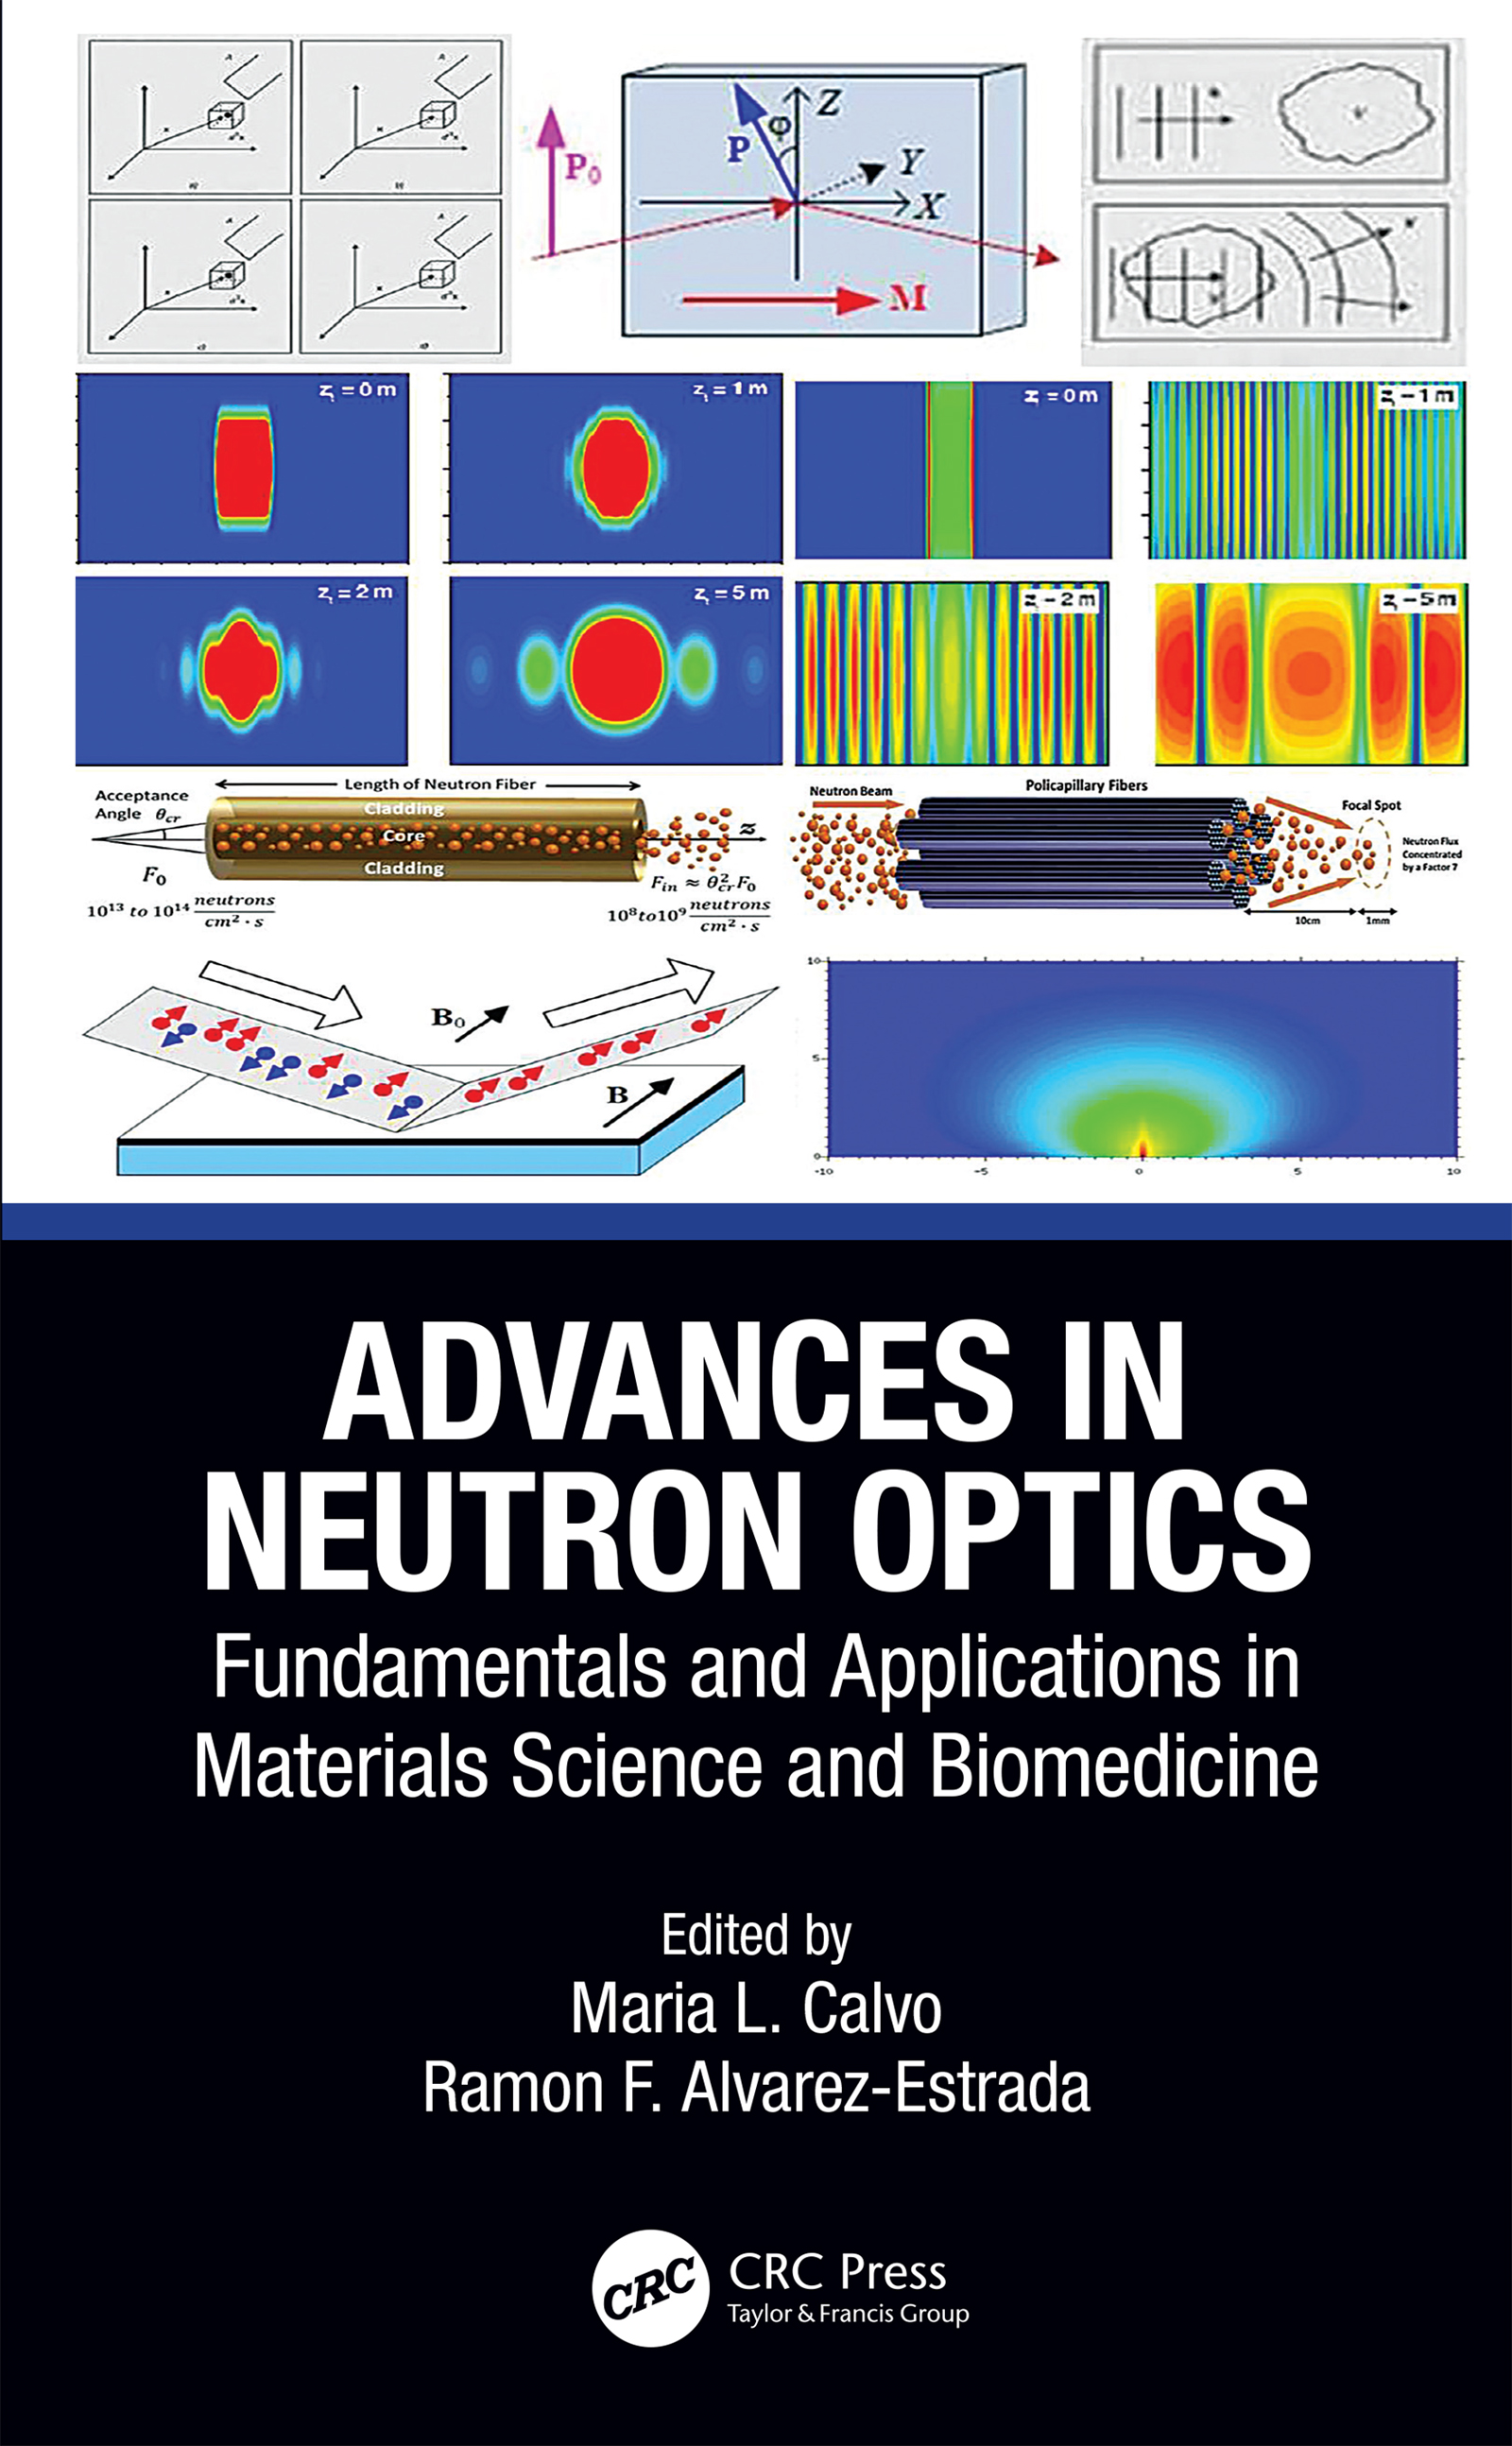 Advances in Neutron Optics: Fundamentals and Applications in Materials Science and Biomedicine book cover